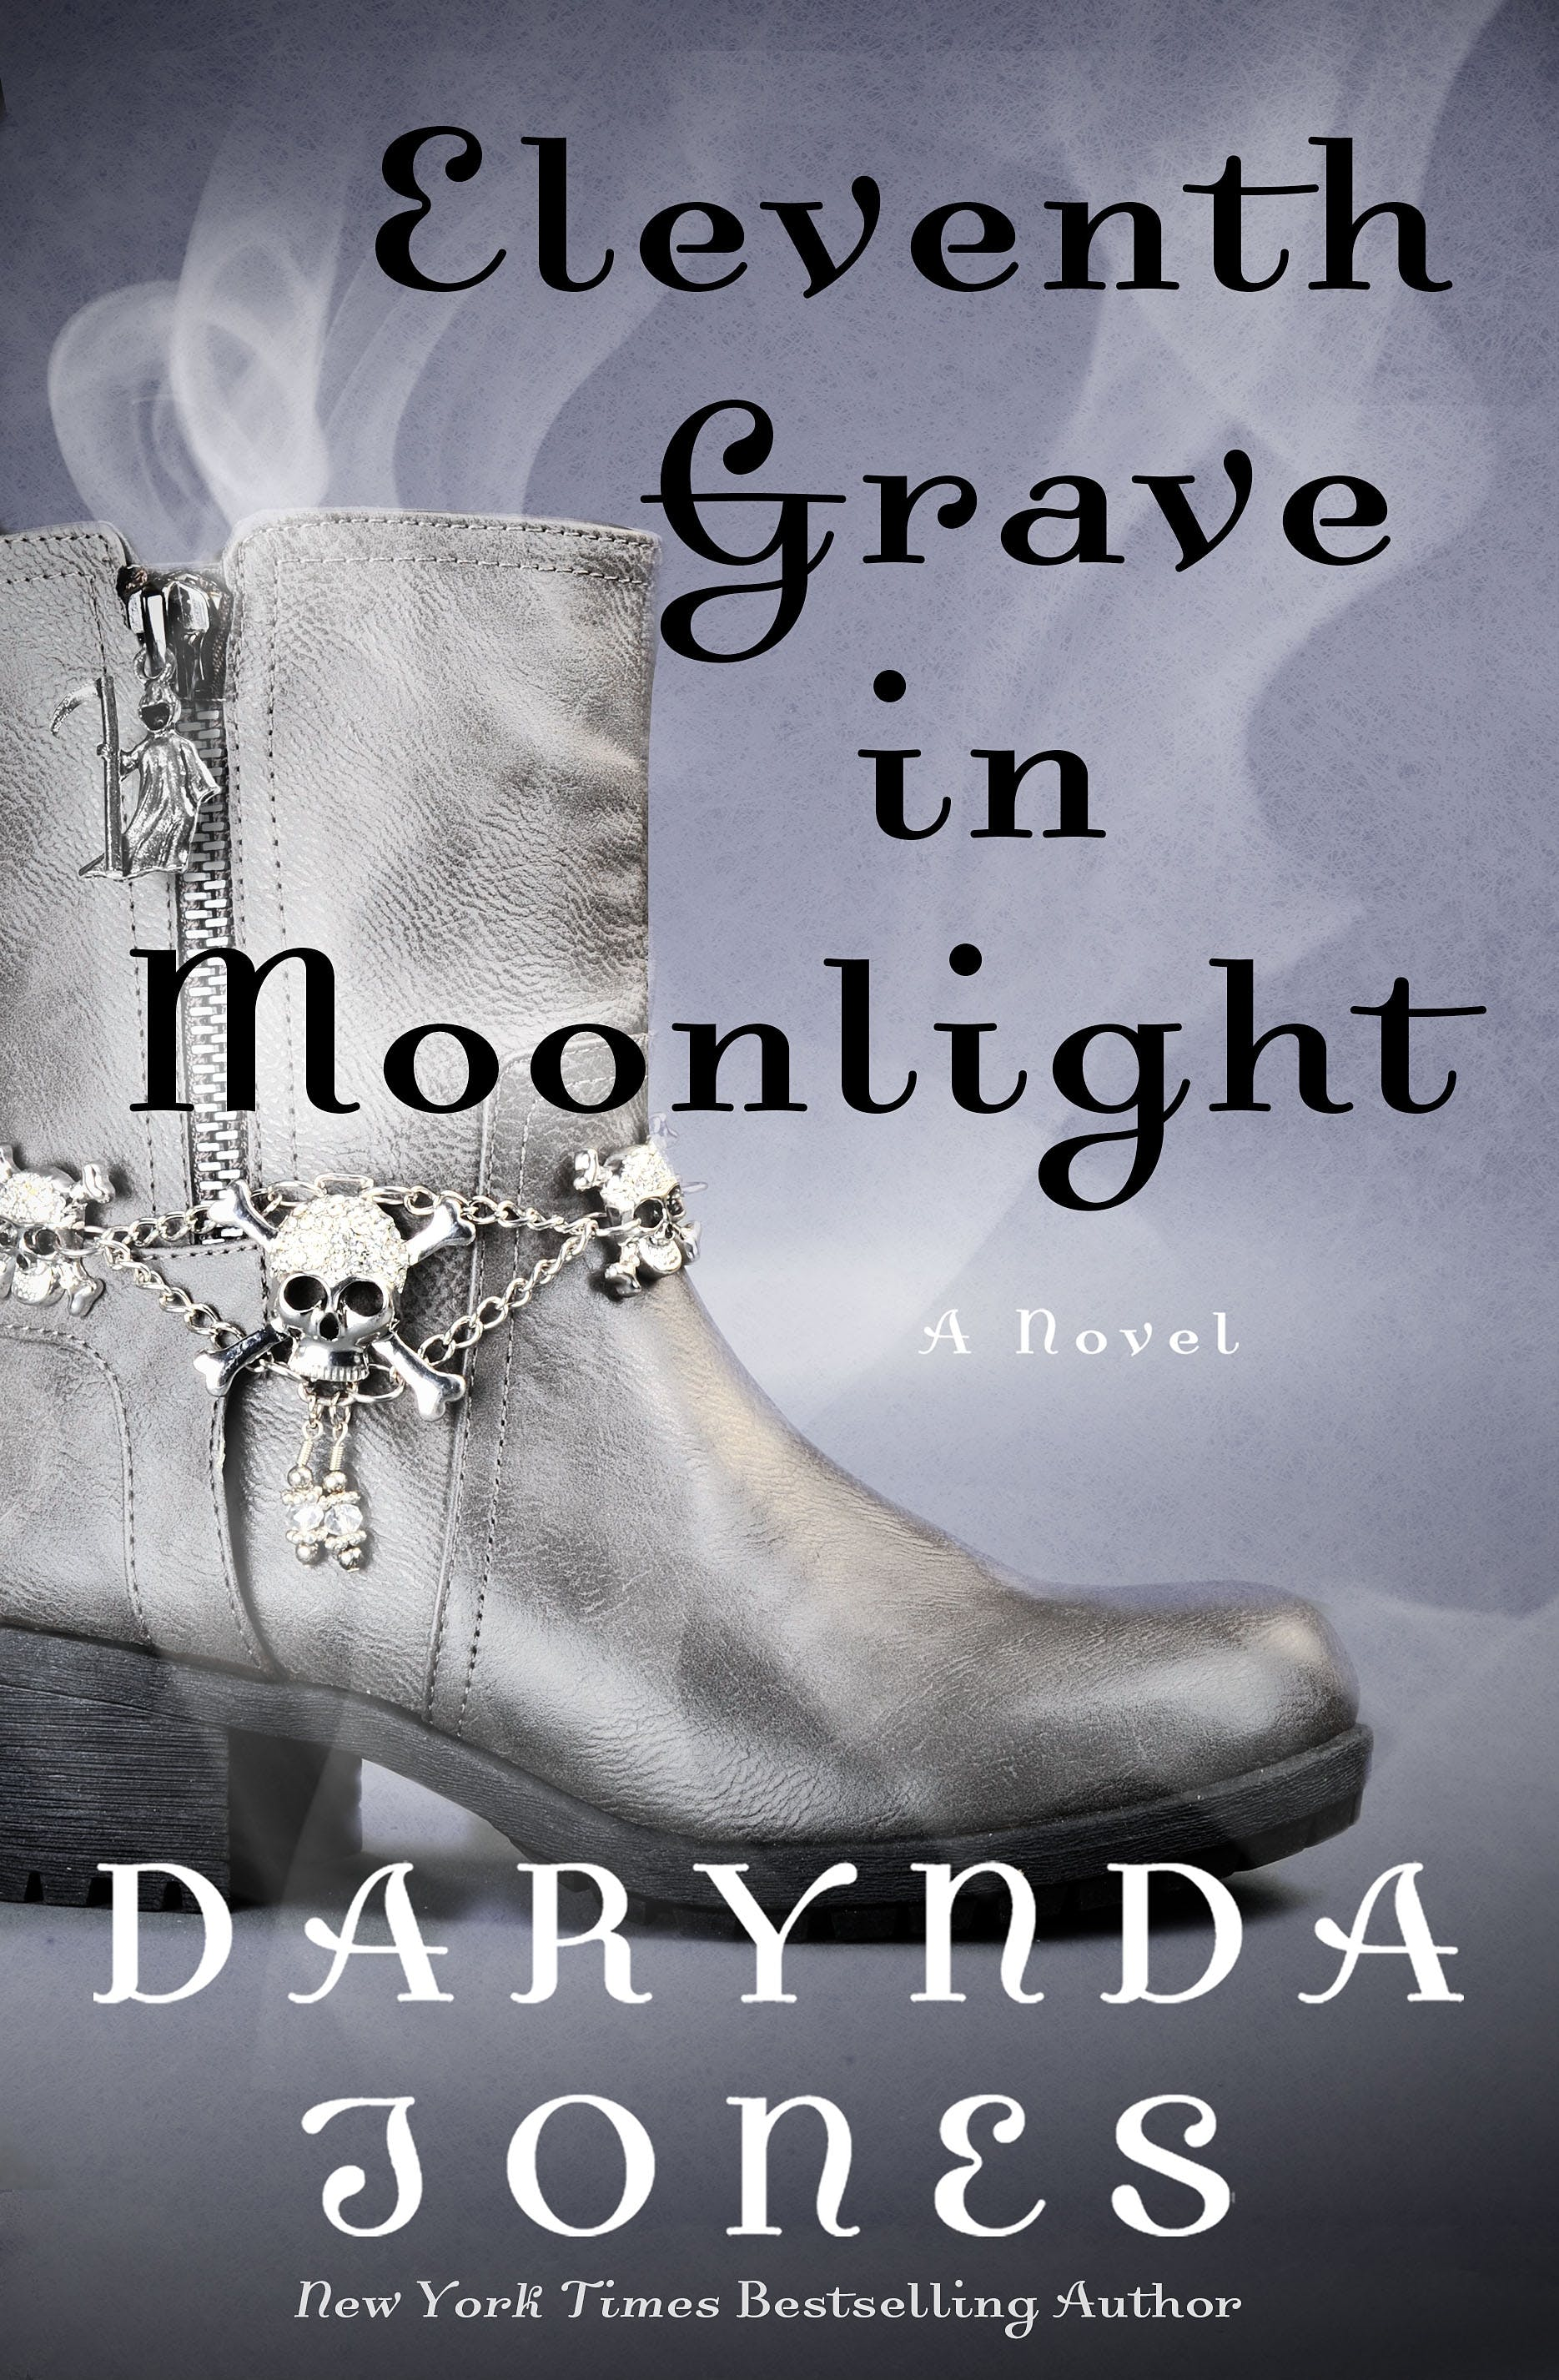 Image of Eleventh Grave in Moonlight